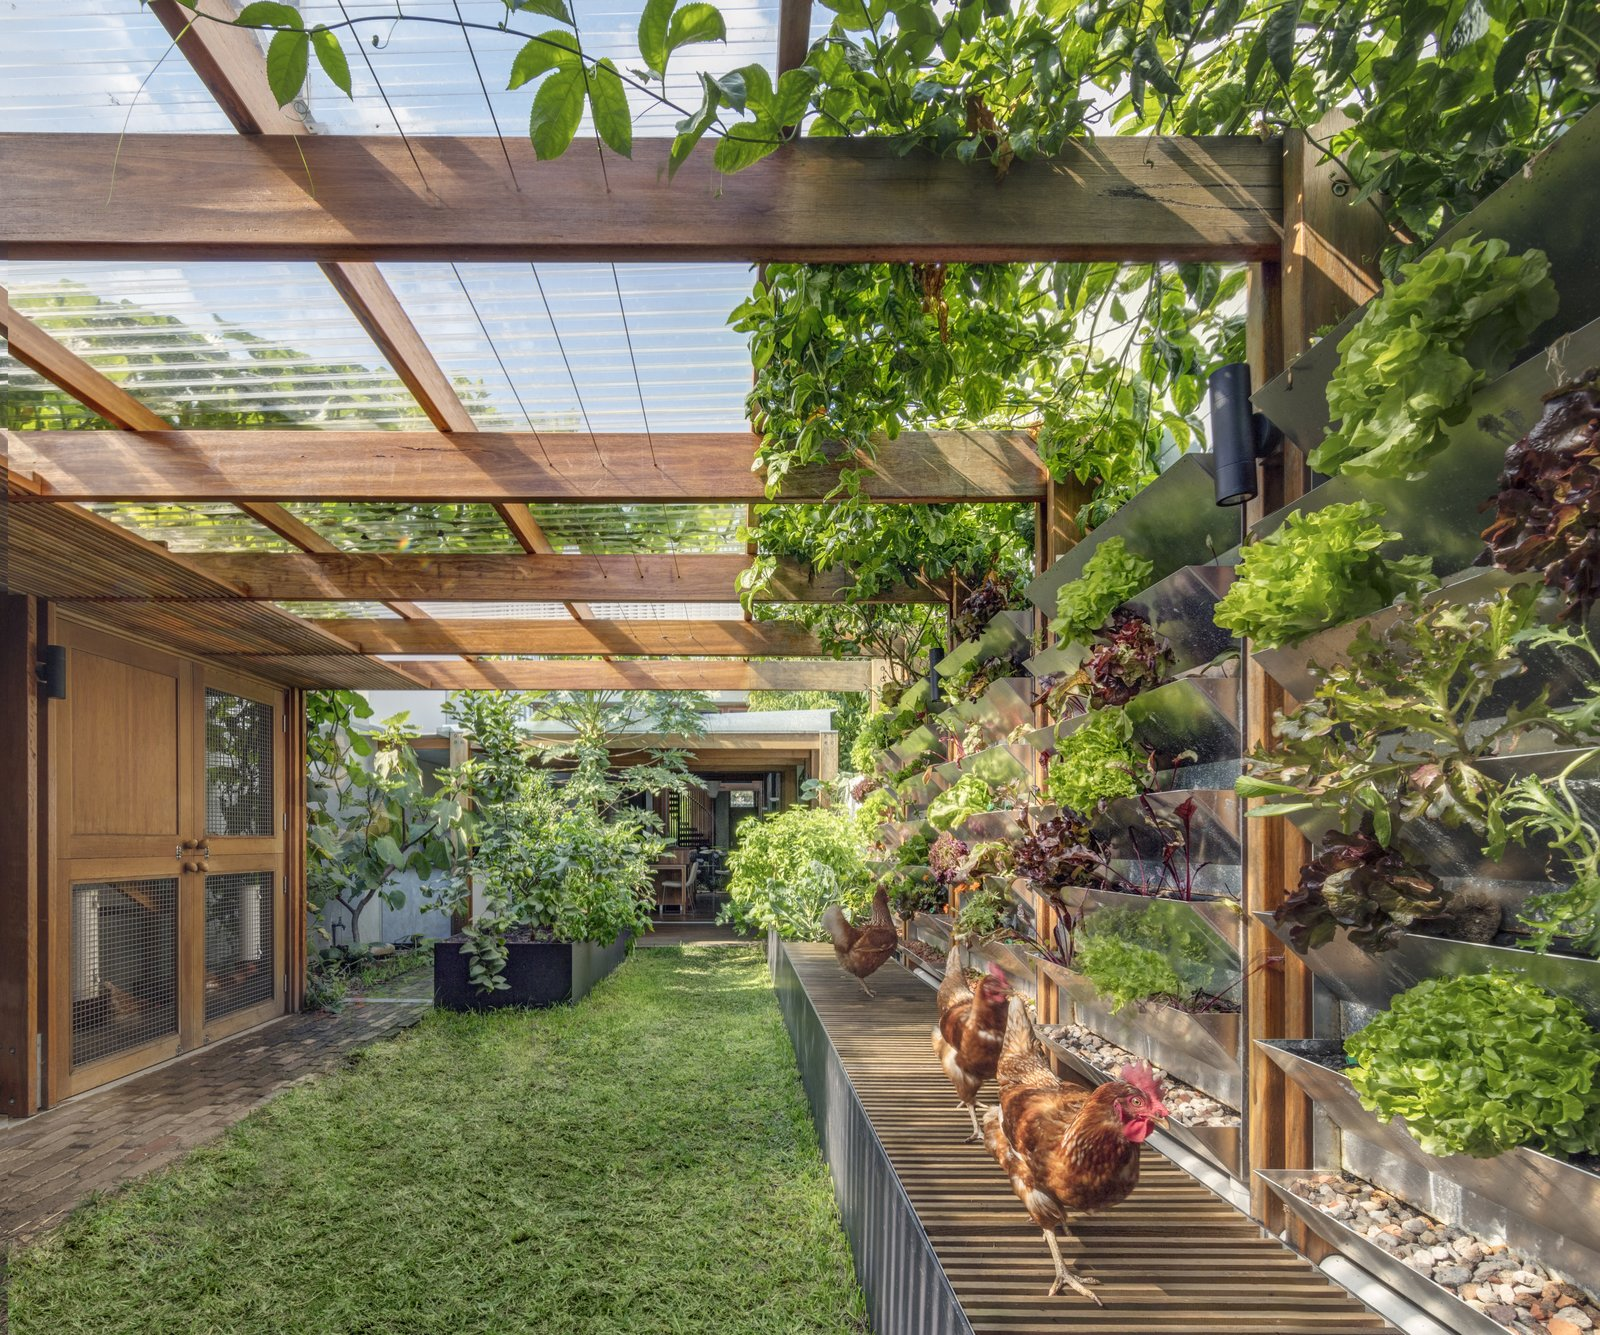 Outdoor, Side Yard, Garden, Walkways, Gardens, and Grass  Best Photos from A Sustainable Home Near Sydney Boasts Chicken Coops, Vertical Gardens, and More